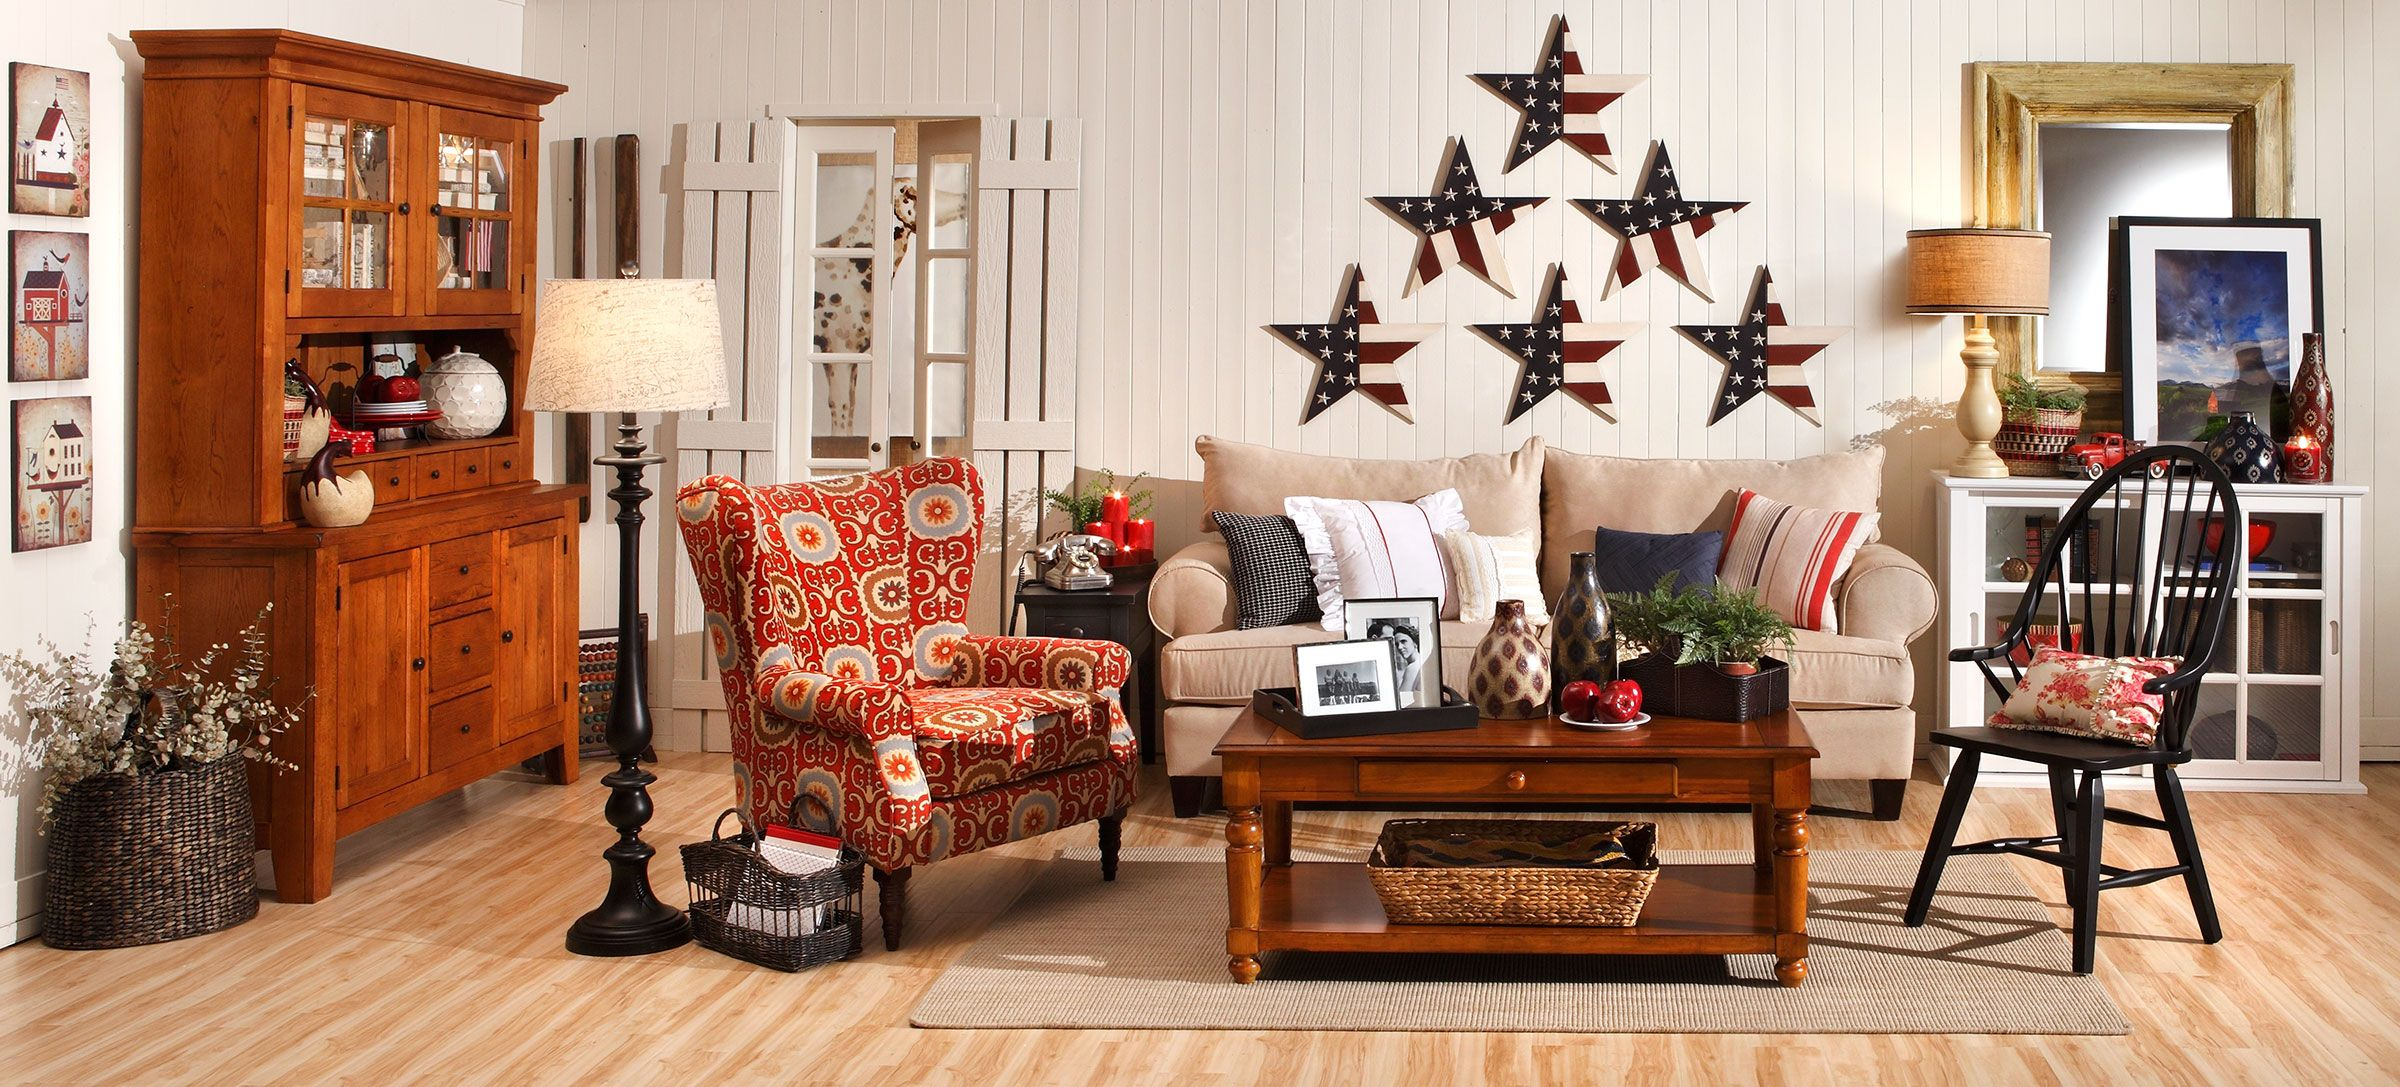 Americana home decor home vintage and room decor for Americana style house